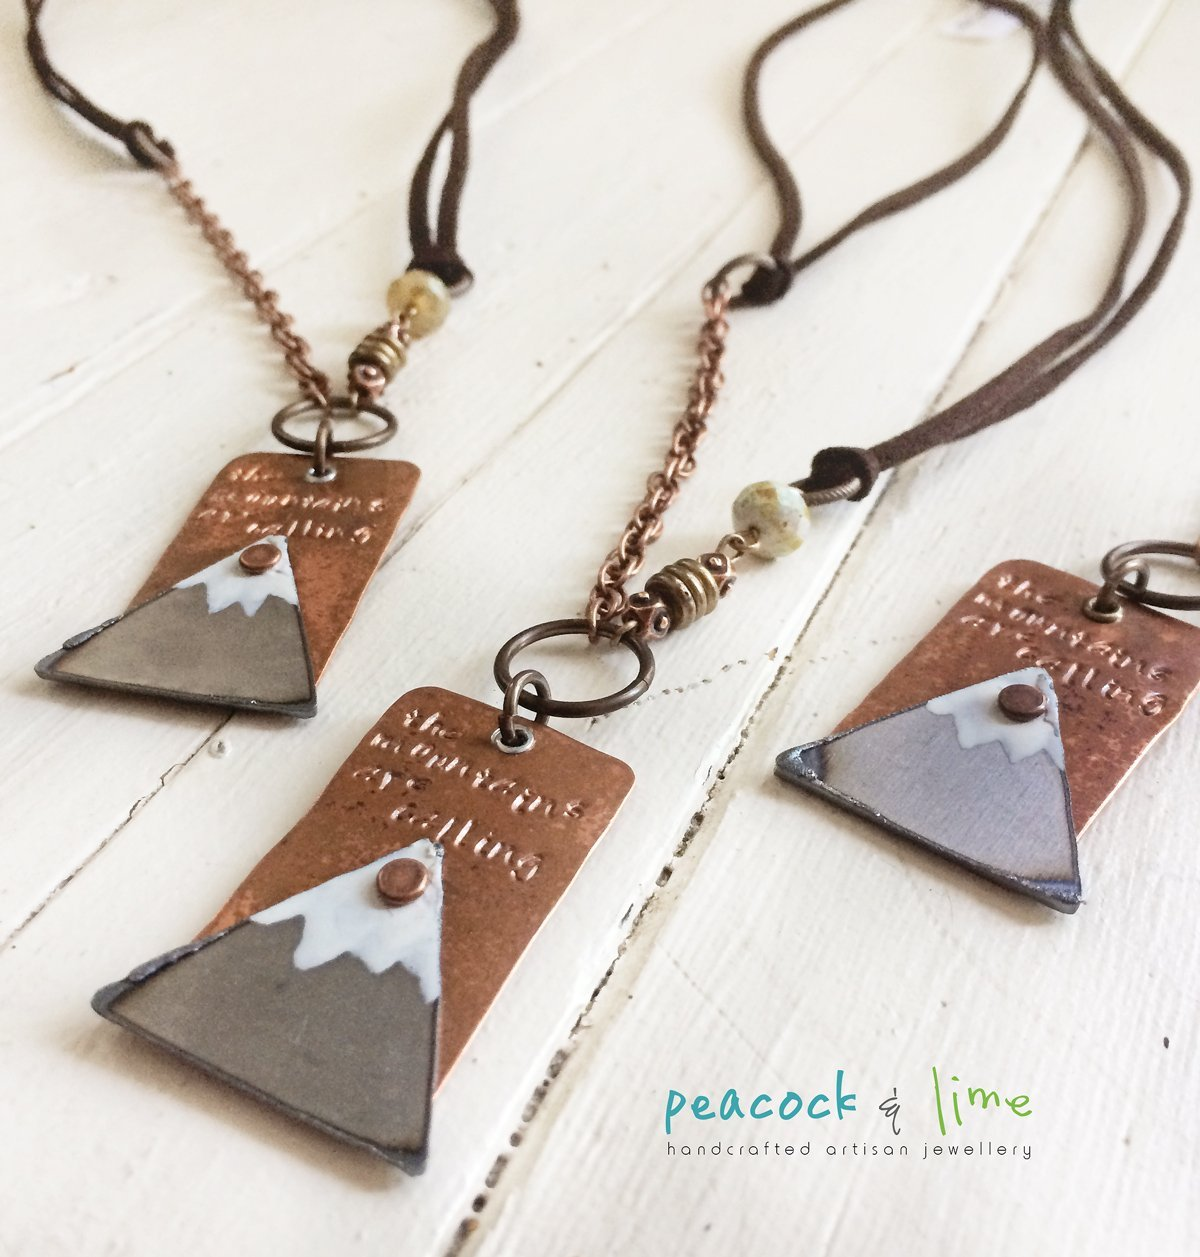 the mountains are calling handstamped necklace - Peacock & Lime , the original Peacock and Lime boho jewelry